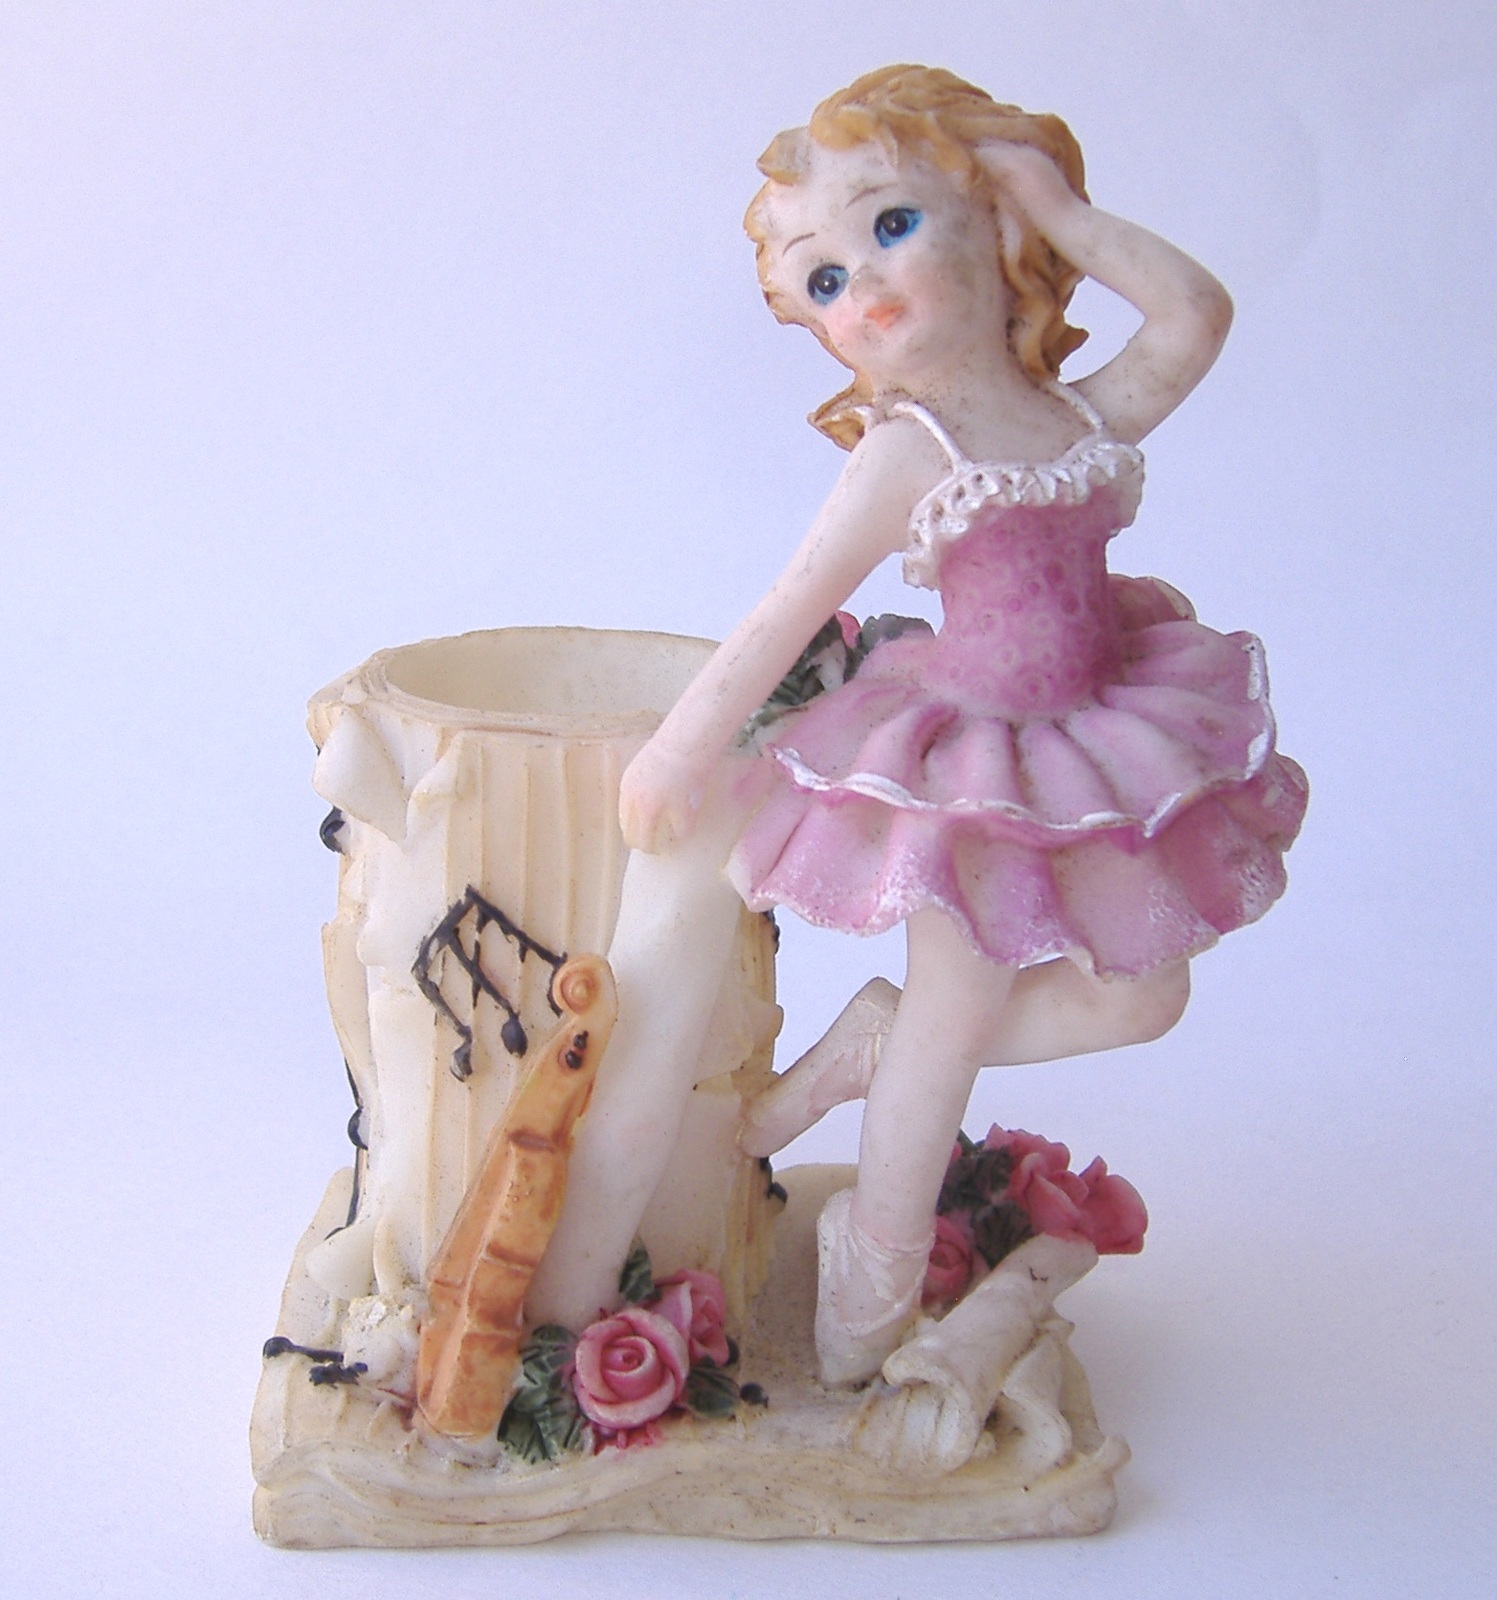 Primary image for Pink Ballerina Figurine Candle Holder Girl Fiddle Music Flower Vase Home Decor